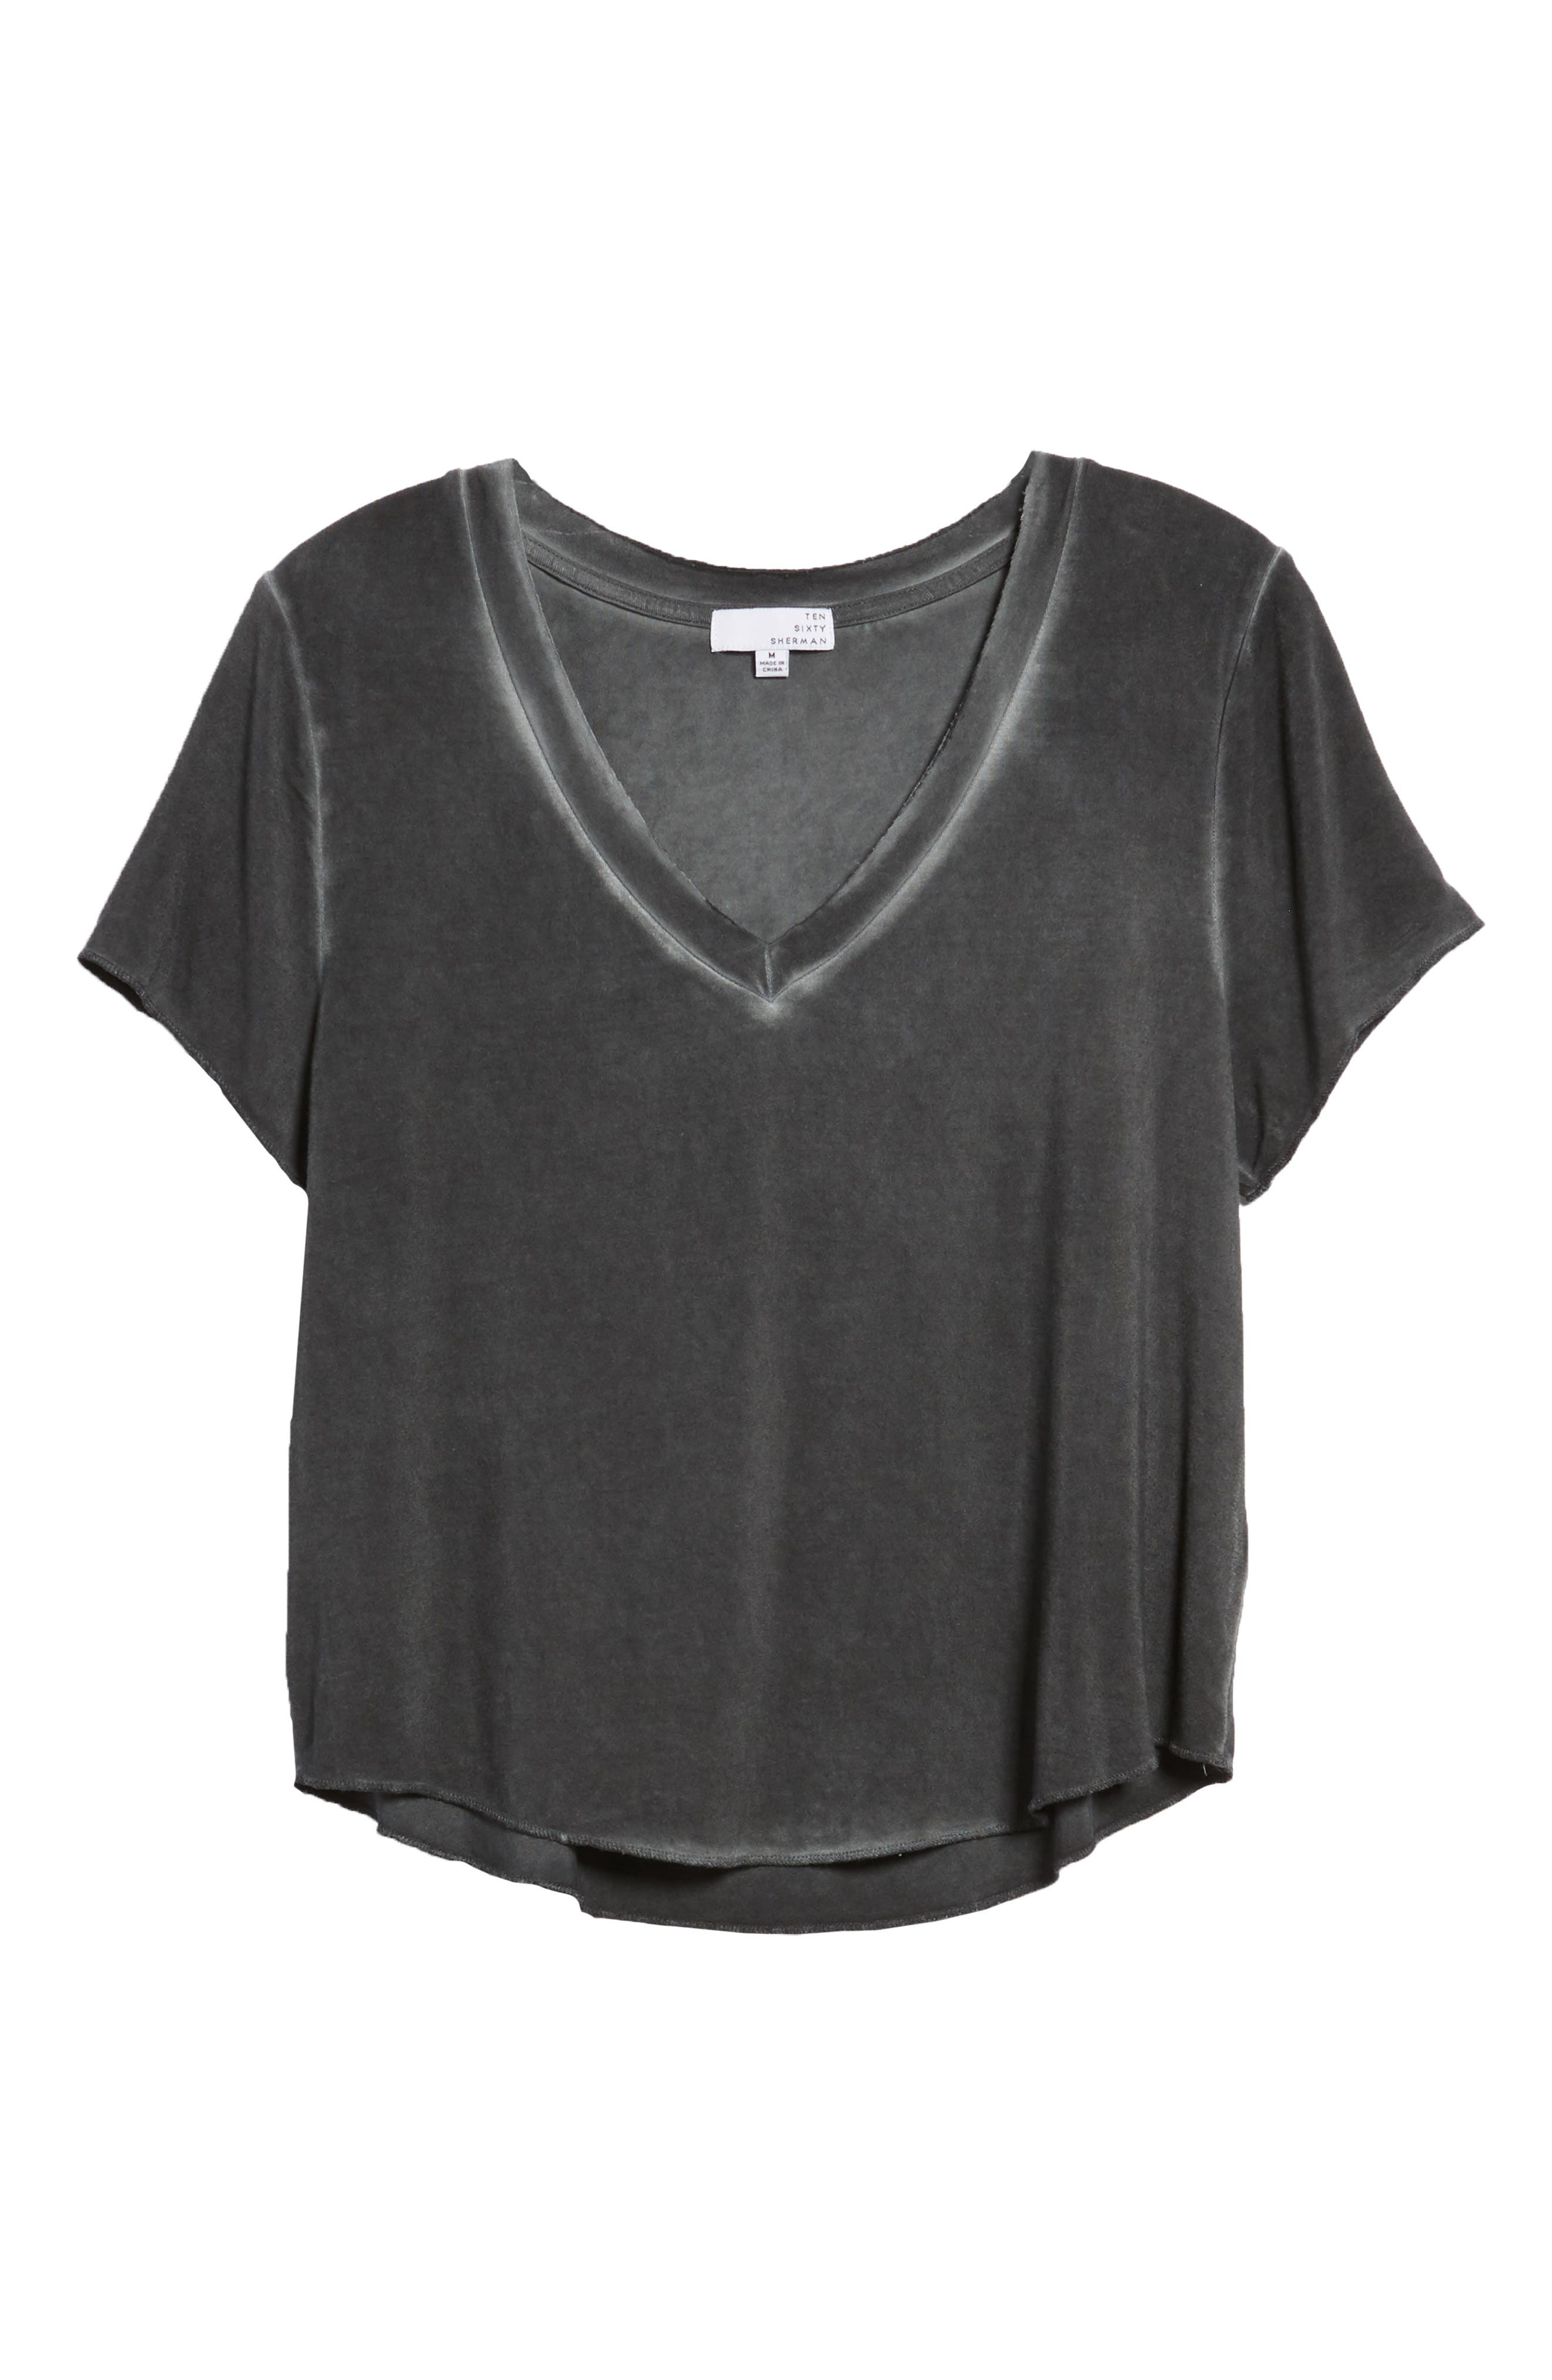 TEN SIXTY SHERMAN,                             Meet & Greet V-Neck Tee,                             Alternate thumbnail 6, color,                             001